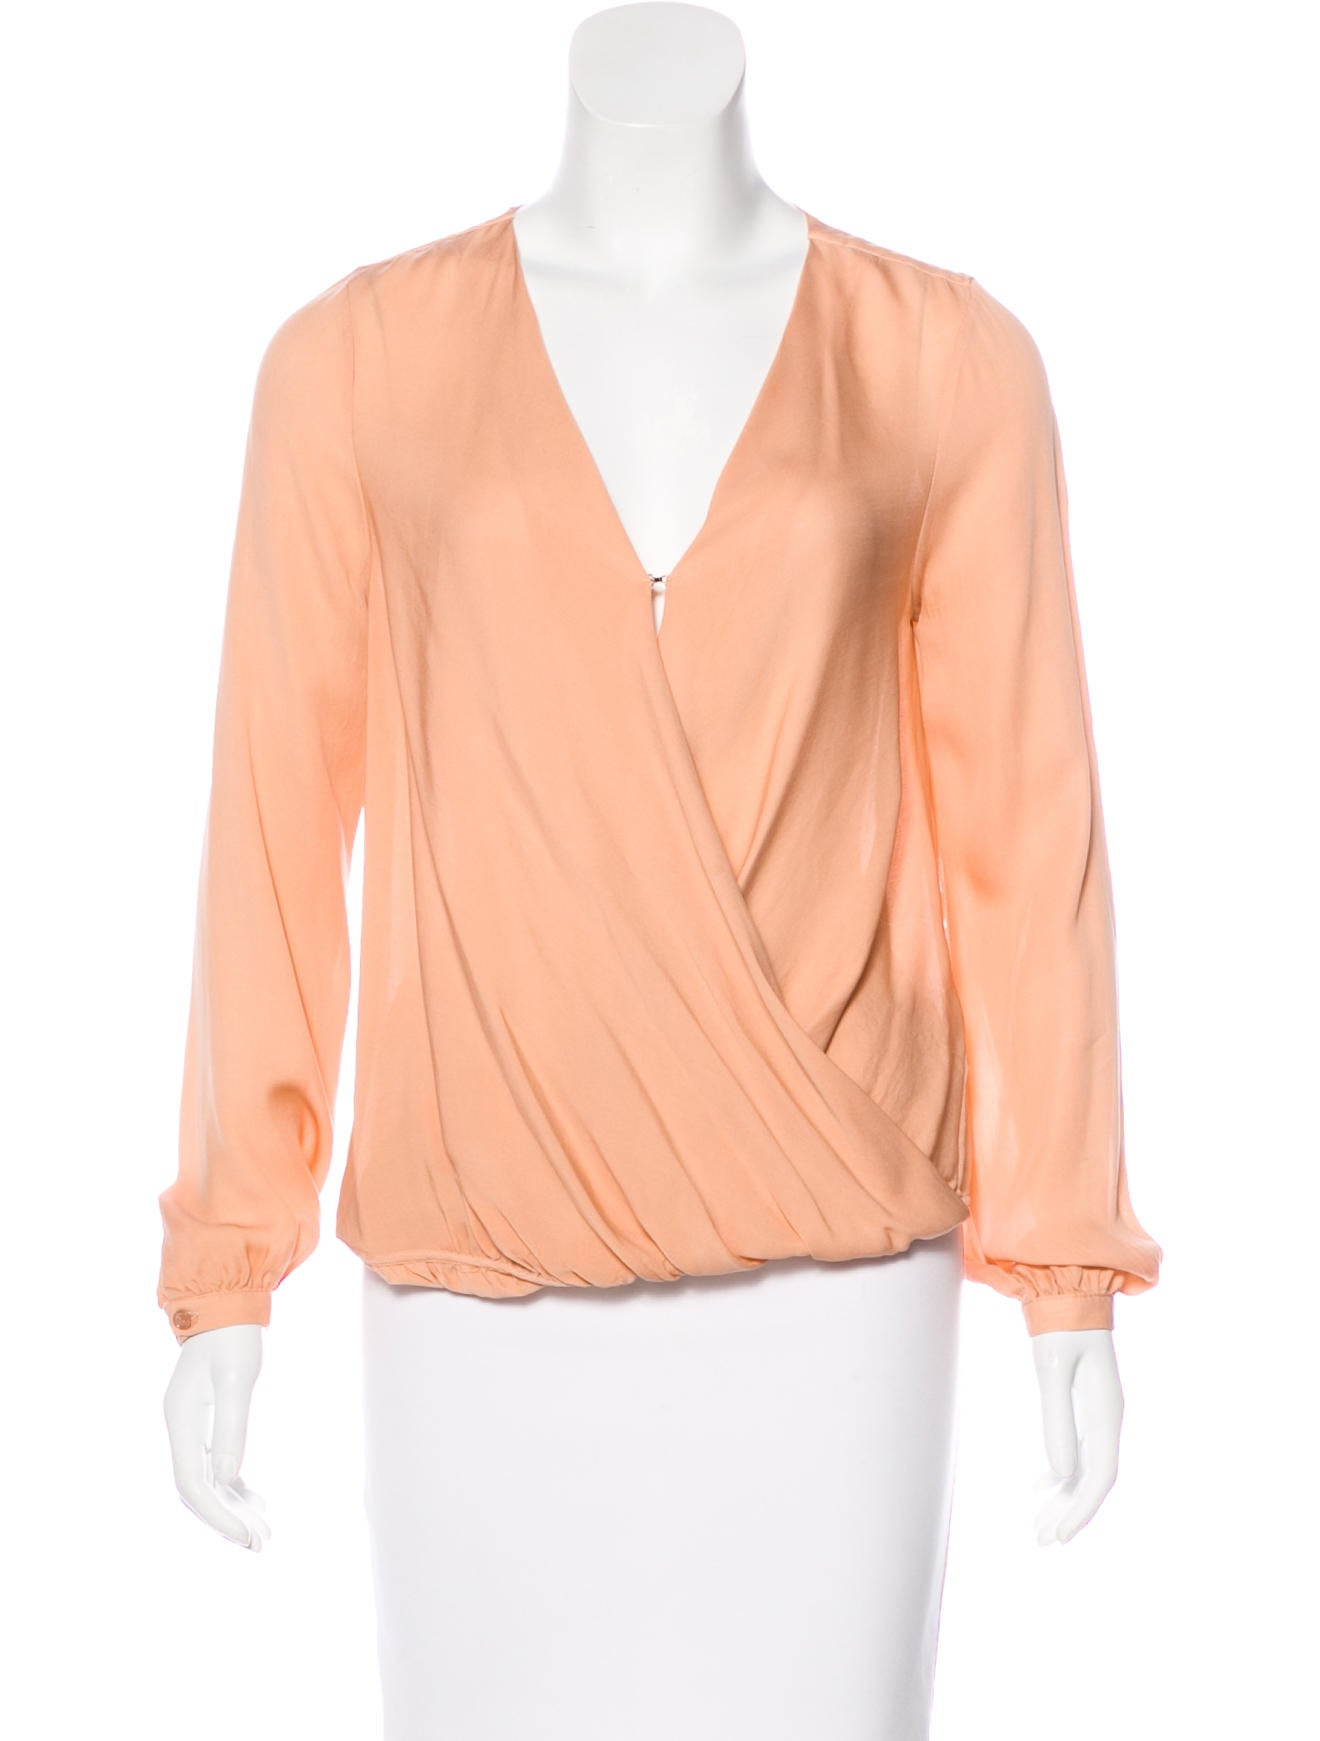 Ladies Silk Long Sleeve Blouses now is available at nirtsnom.tk, buy now with and get a great discount, choose our fast delivery option and you will receive it in 7 days. Make nirtsnom.tk your one-stop online retailer.